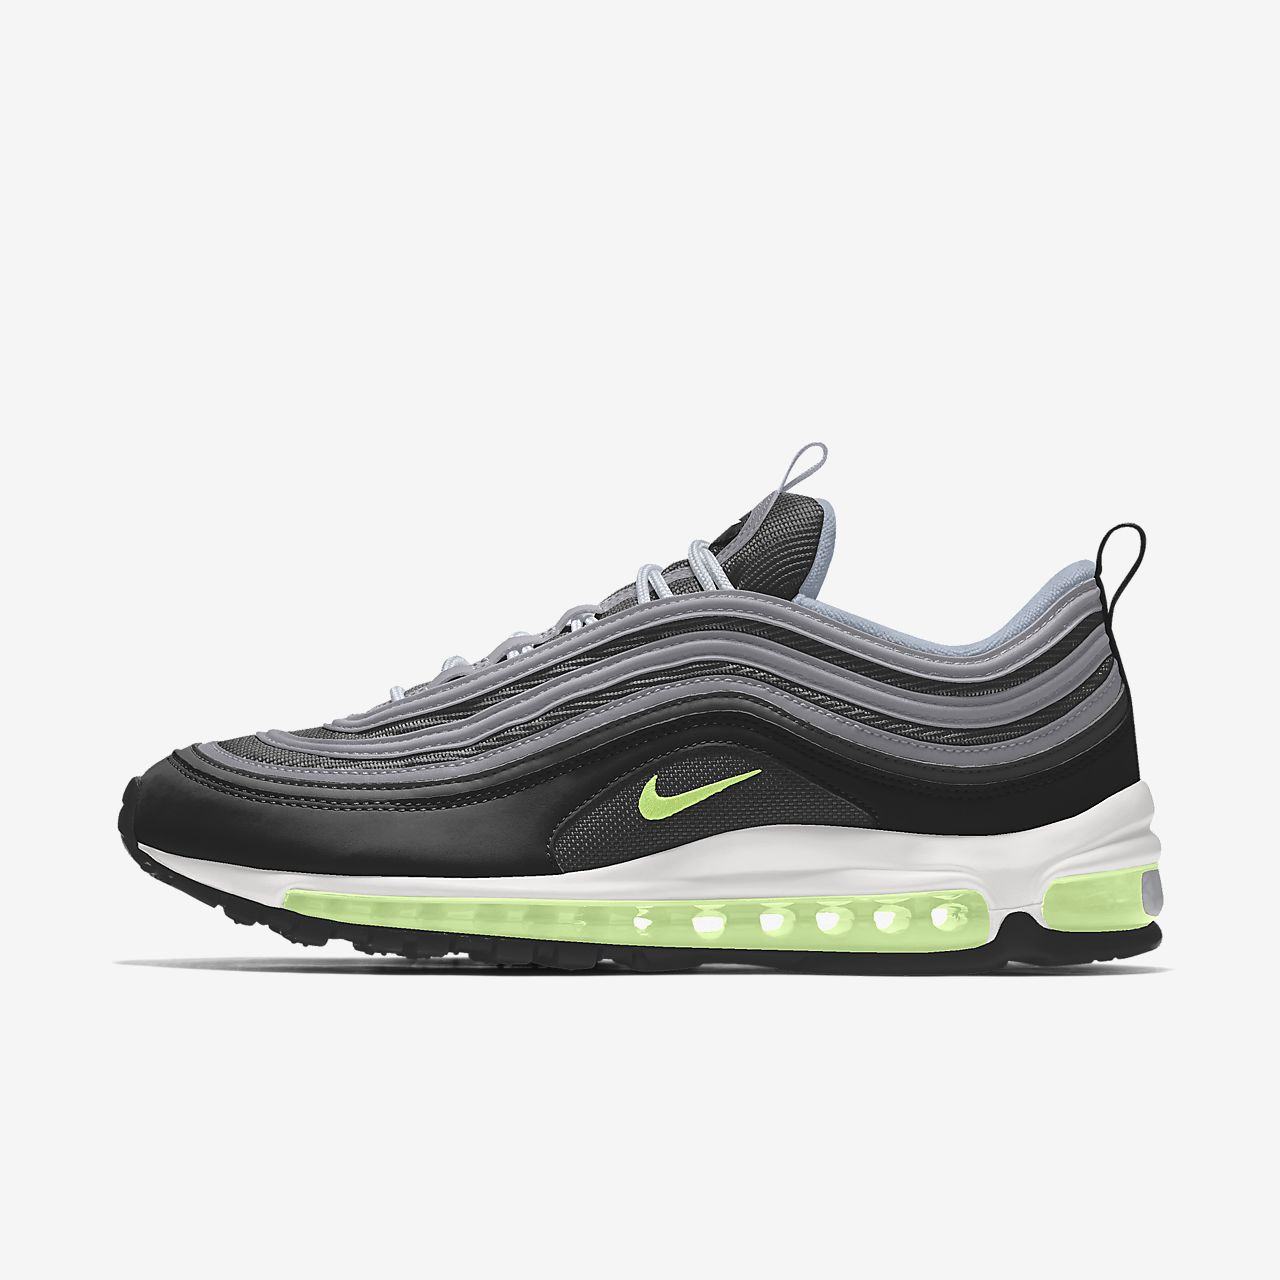 Nike Air Max 97 By You personalisierbarer Damenschuh